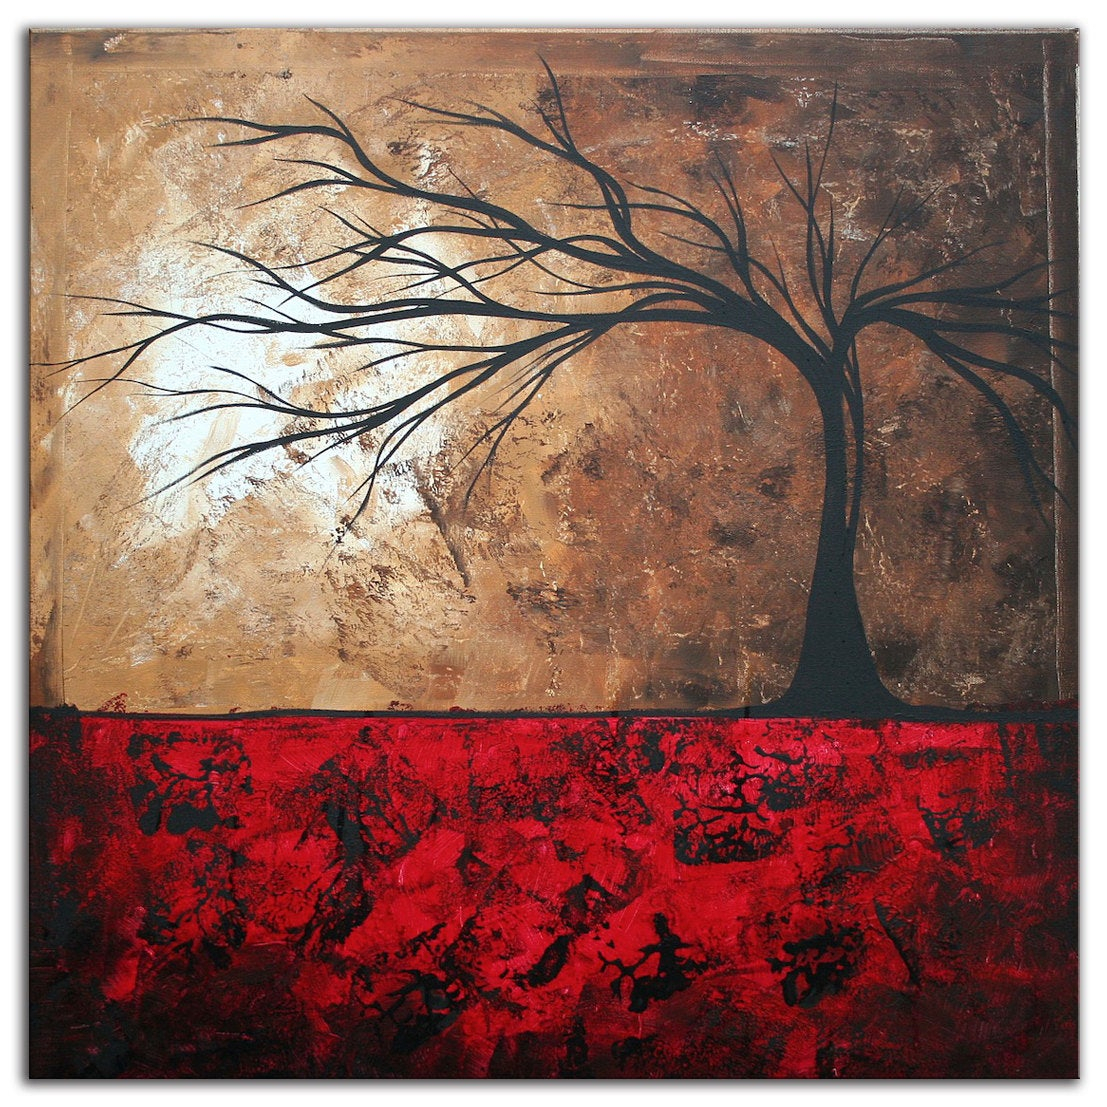 Abstract Tree Art 'lost In The Forest' Modern Wall Decor Giclee On Metal, Contemporary Landscape Red Brown Trees Artworkmegan Duncanson Regarding Contemporary Forest Metal Wall Decor (View 8 of 30)